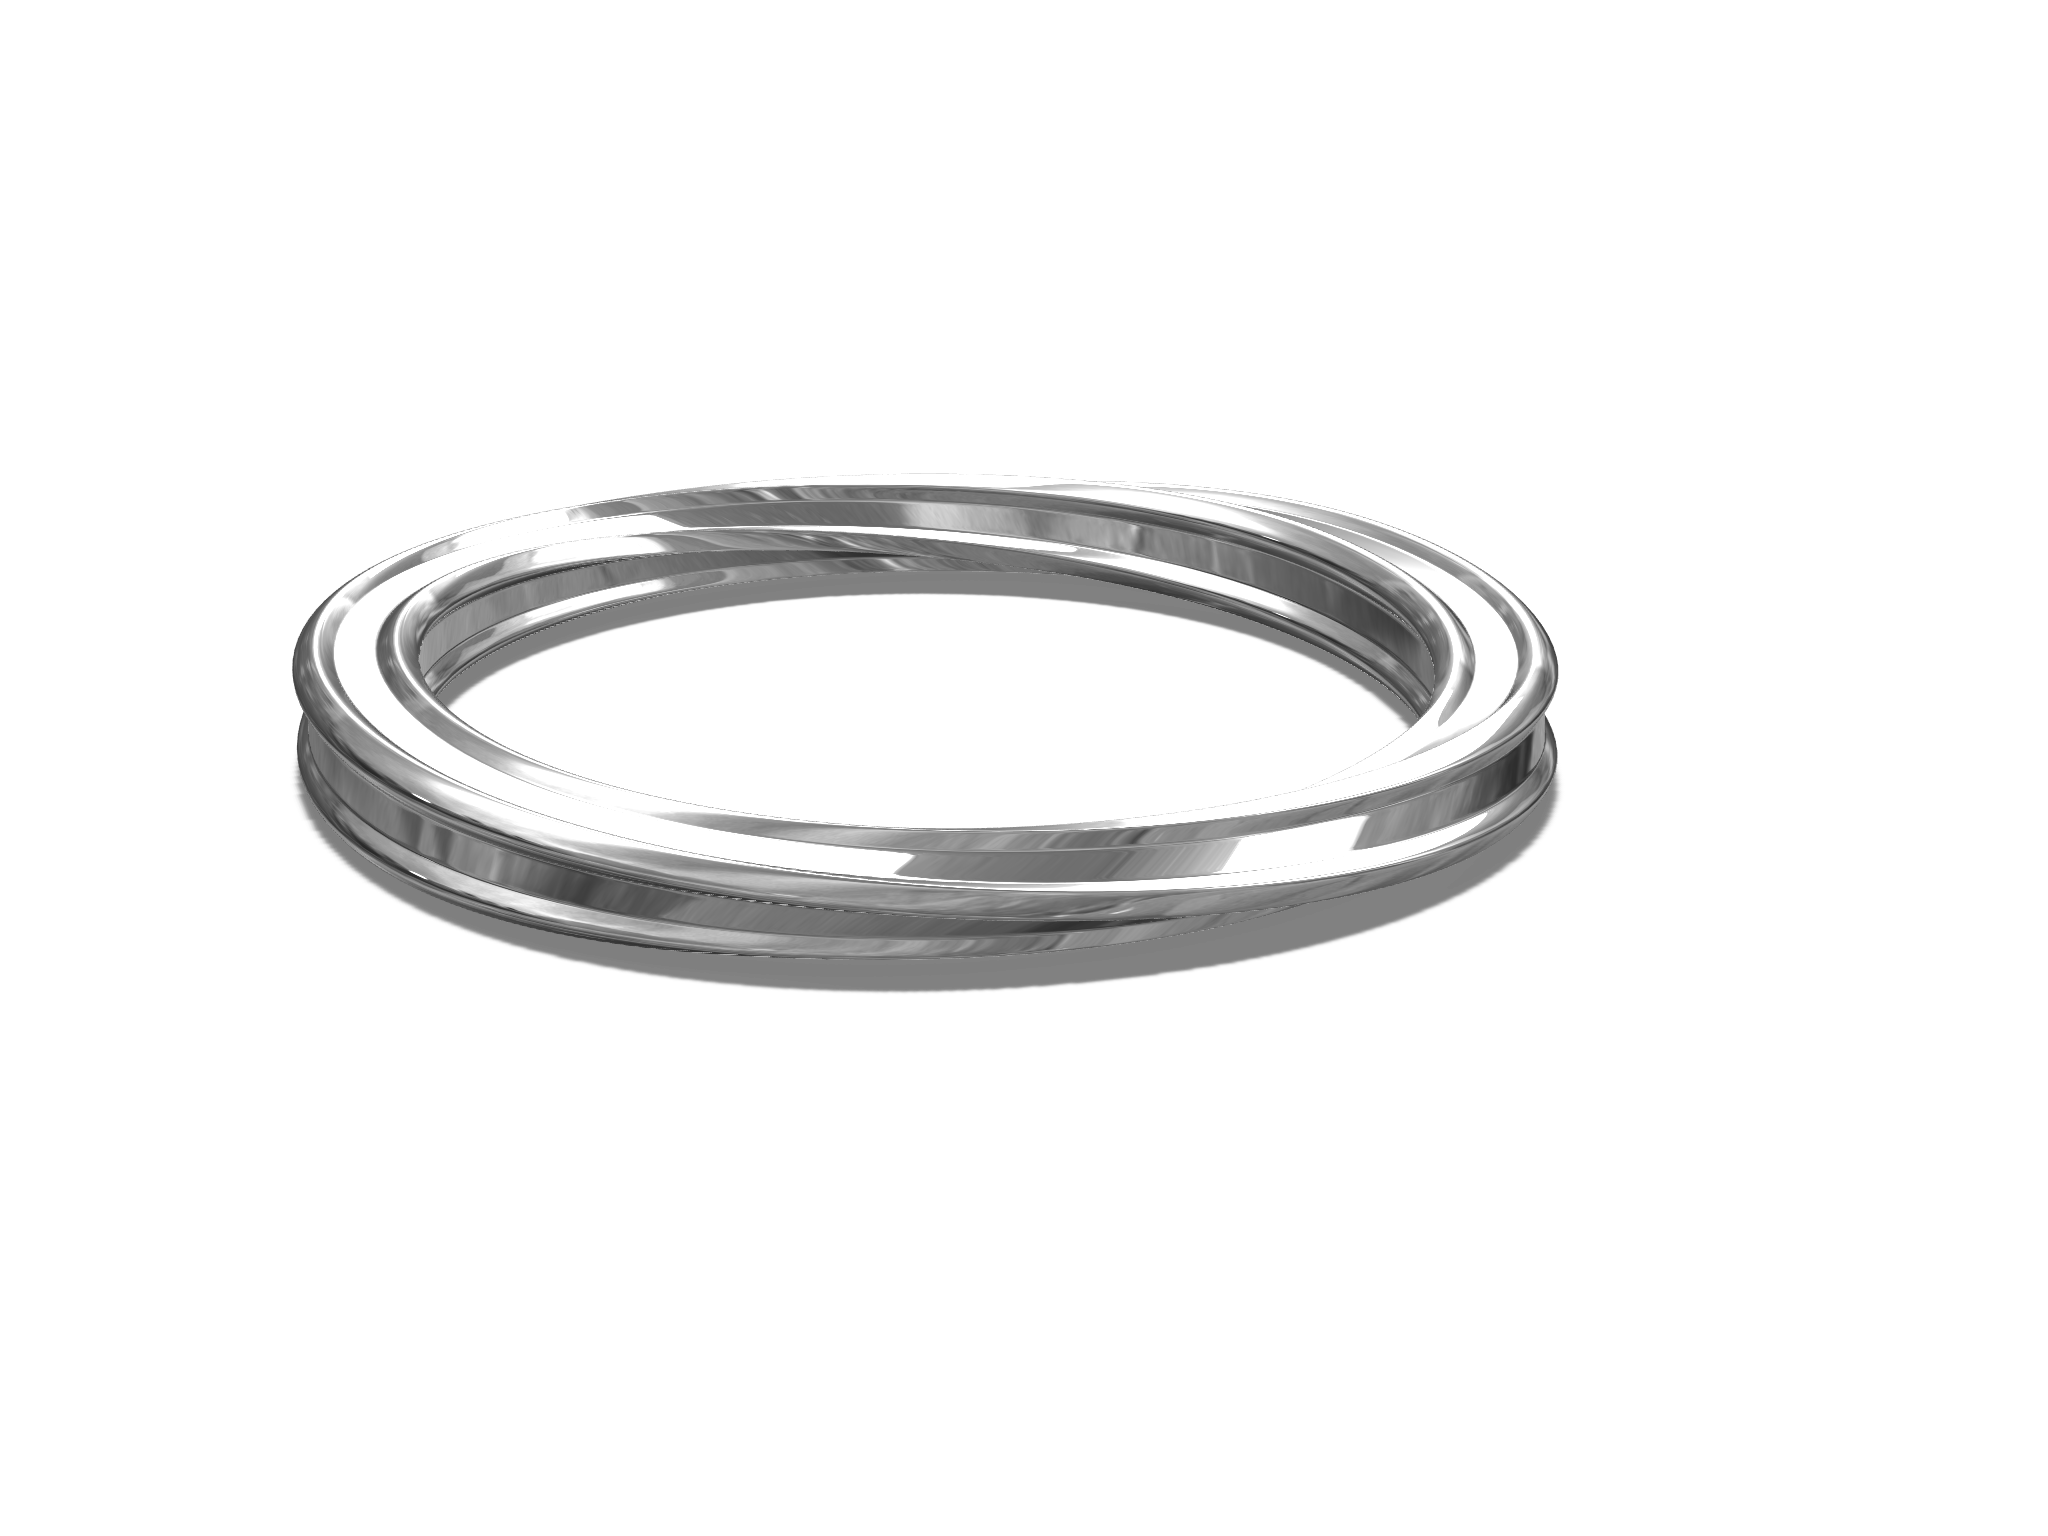 Ring - 3D design by nl345052454 Jan 12, 2018